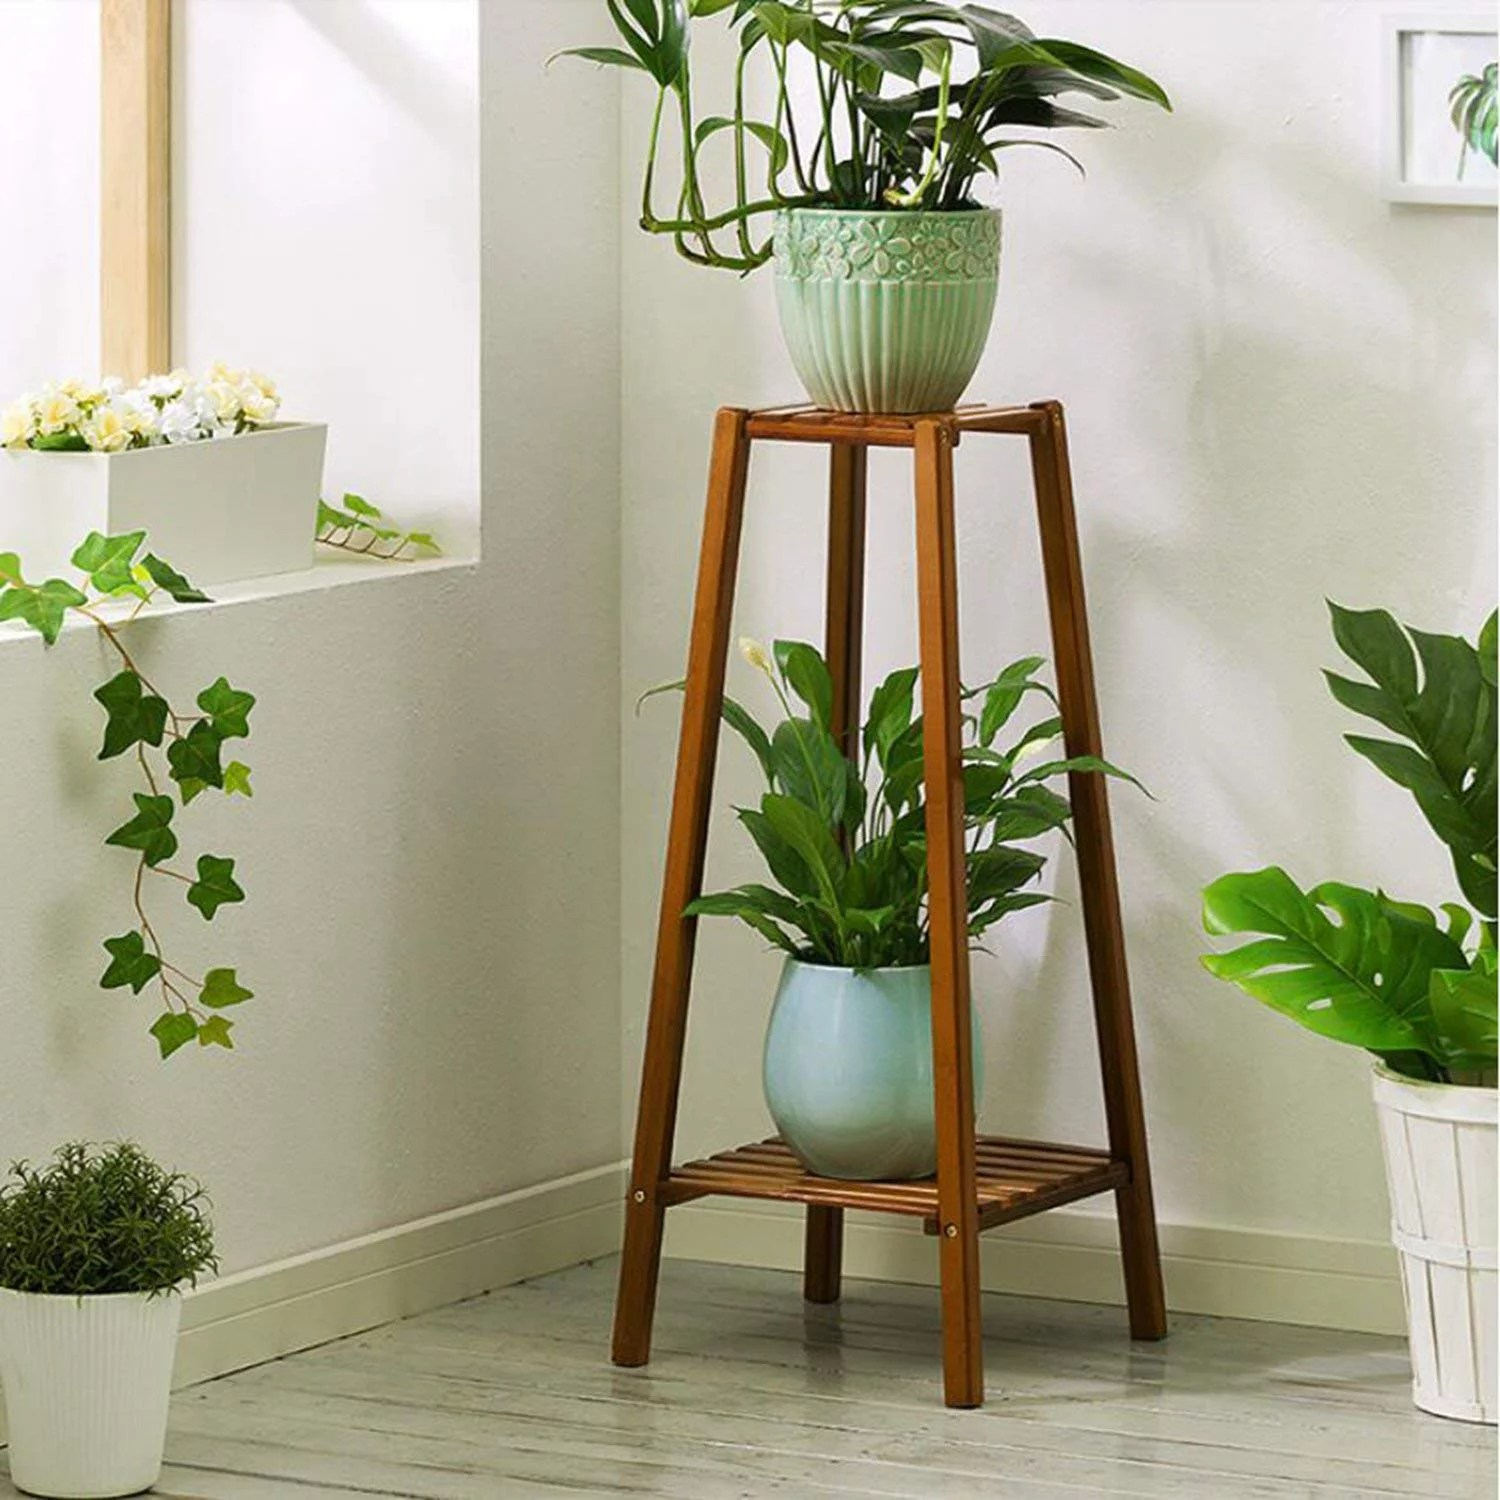 Tiered Plant Holders Magshion Bamboo 2 Tier Tall Plant Stand Pot Holder Small